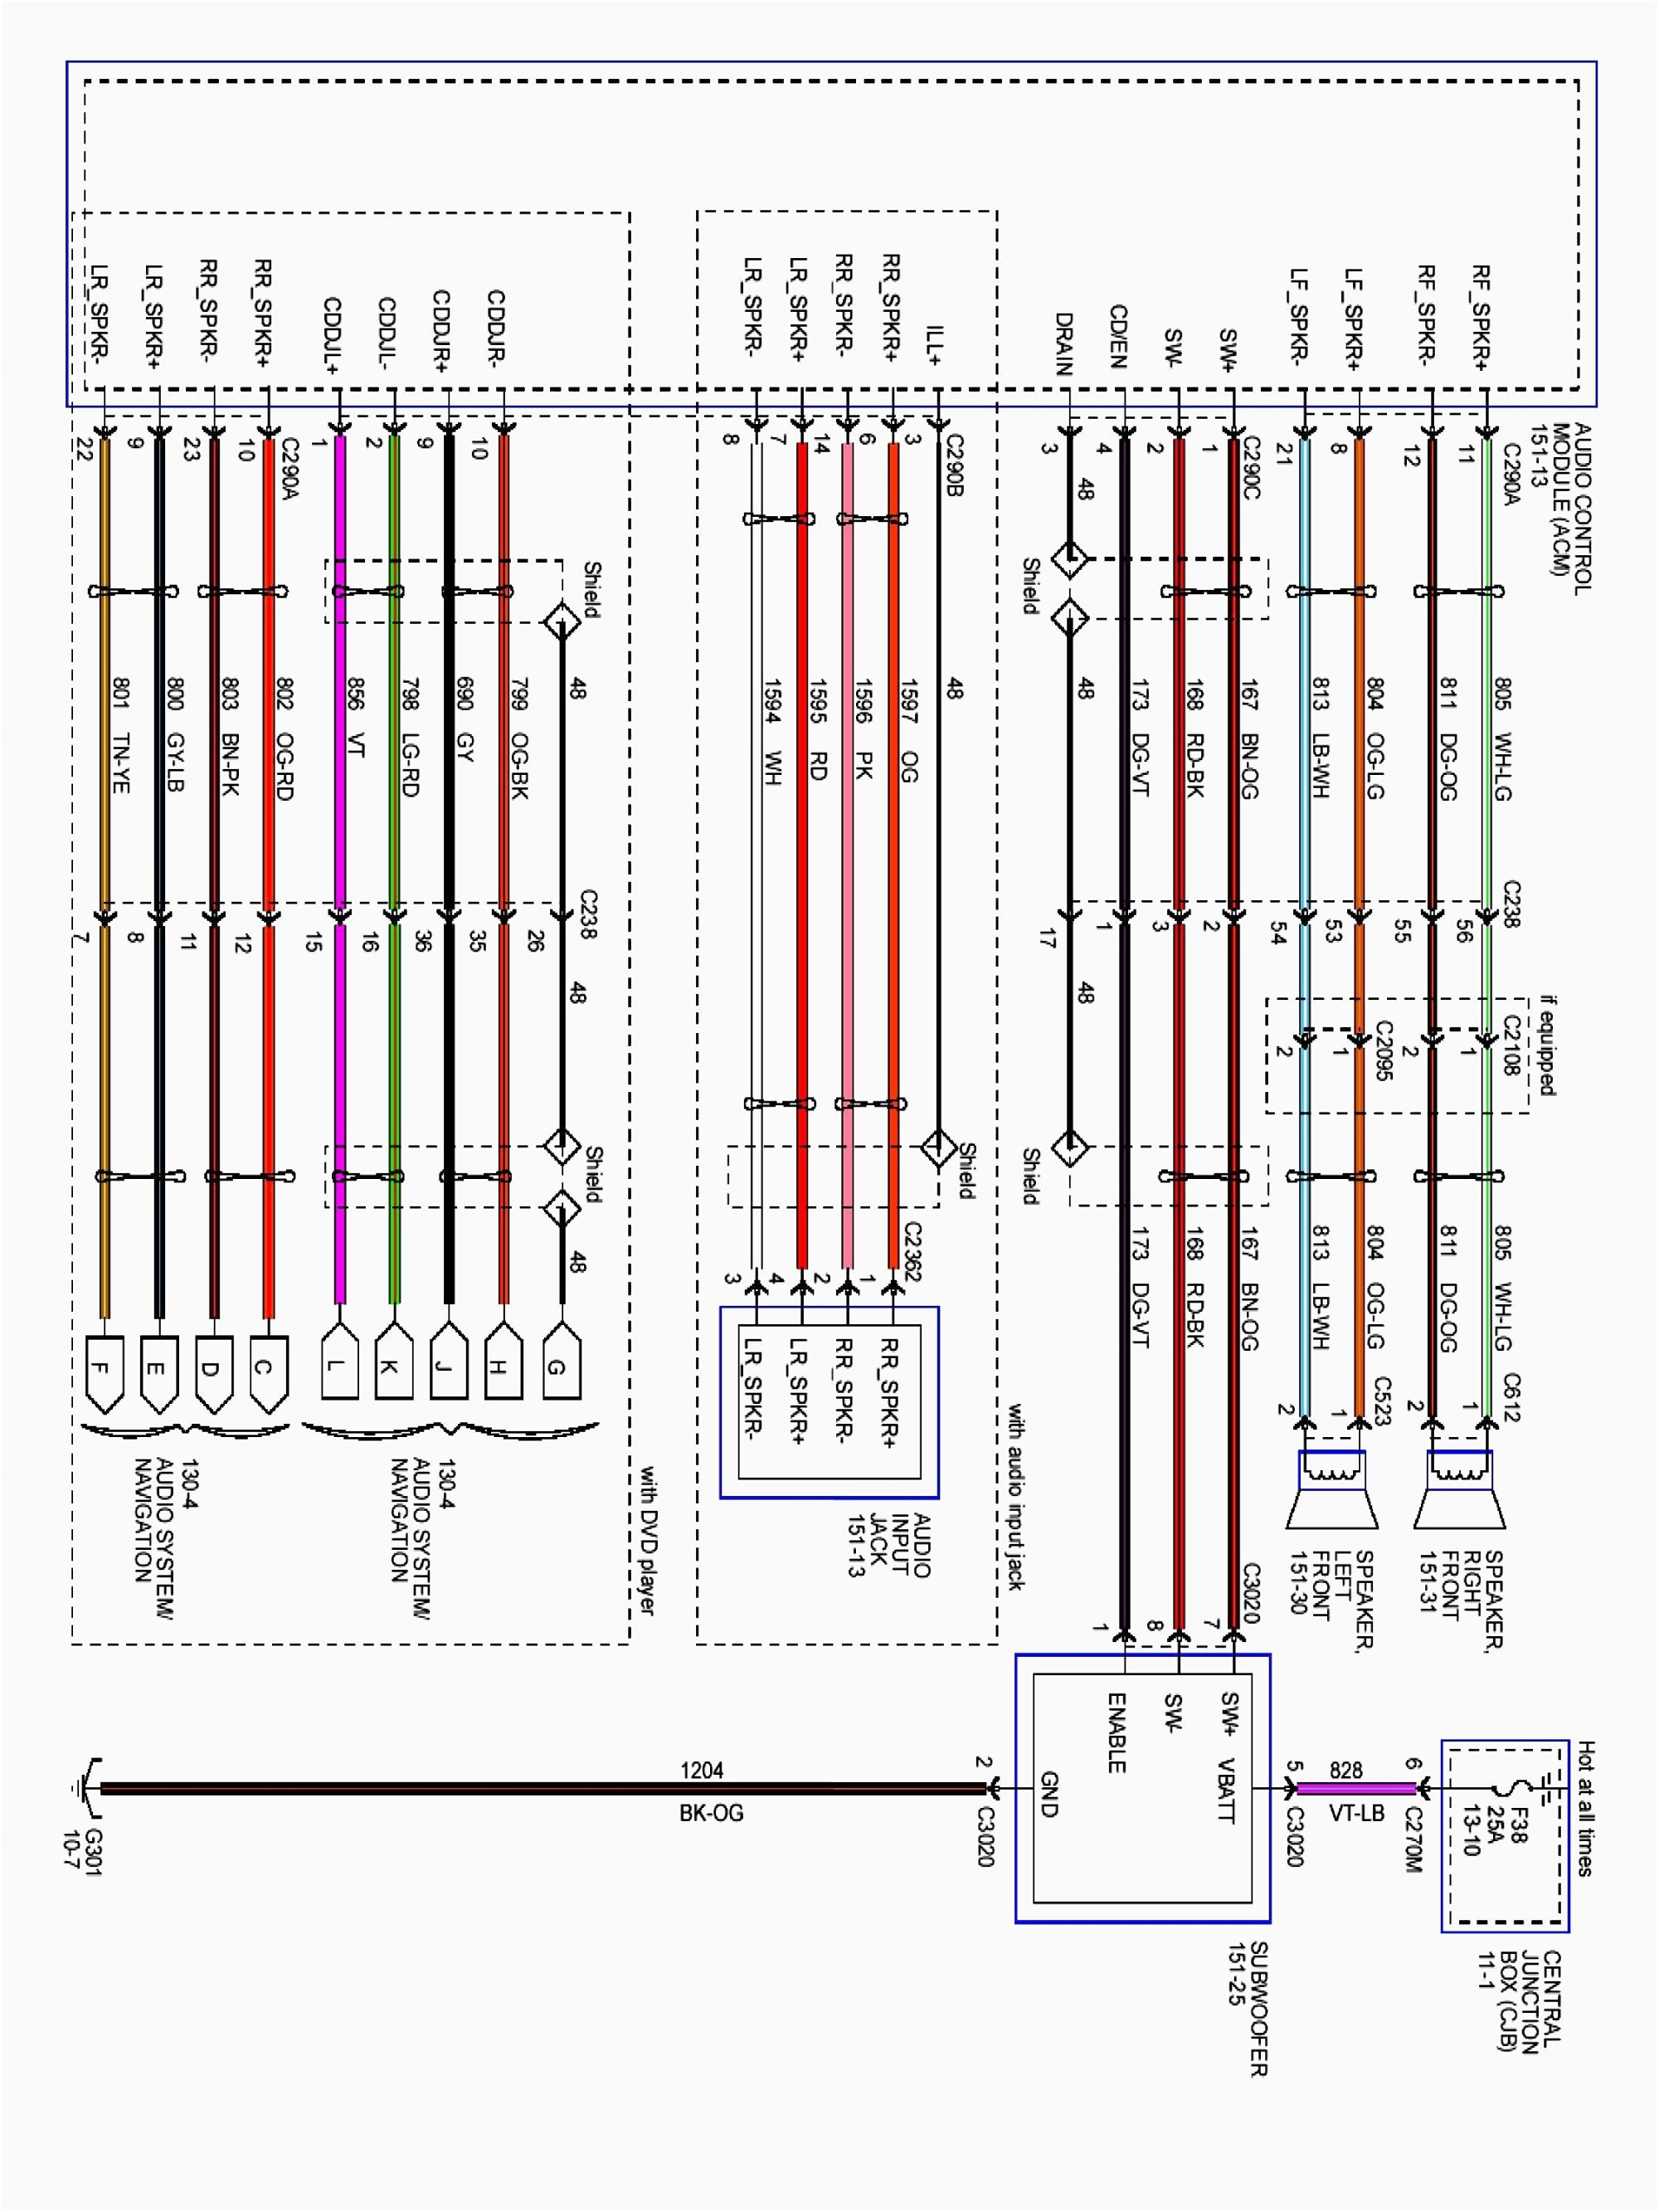 hight resolution of ford f 150 trailer wiring harness diagram wiring diagram mega2010 ford f 150 trailer wiring harness